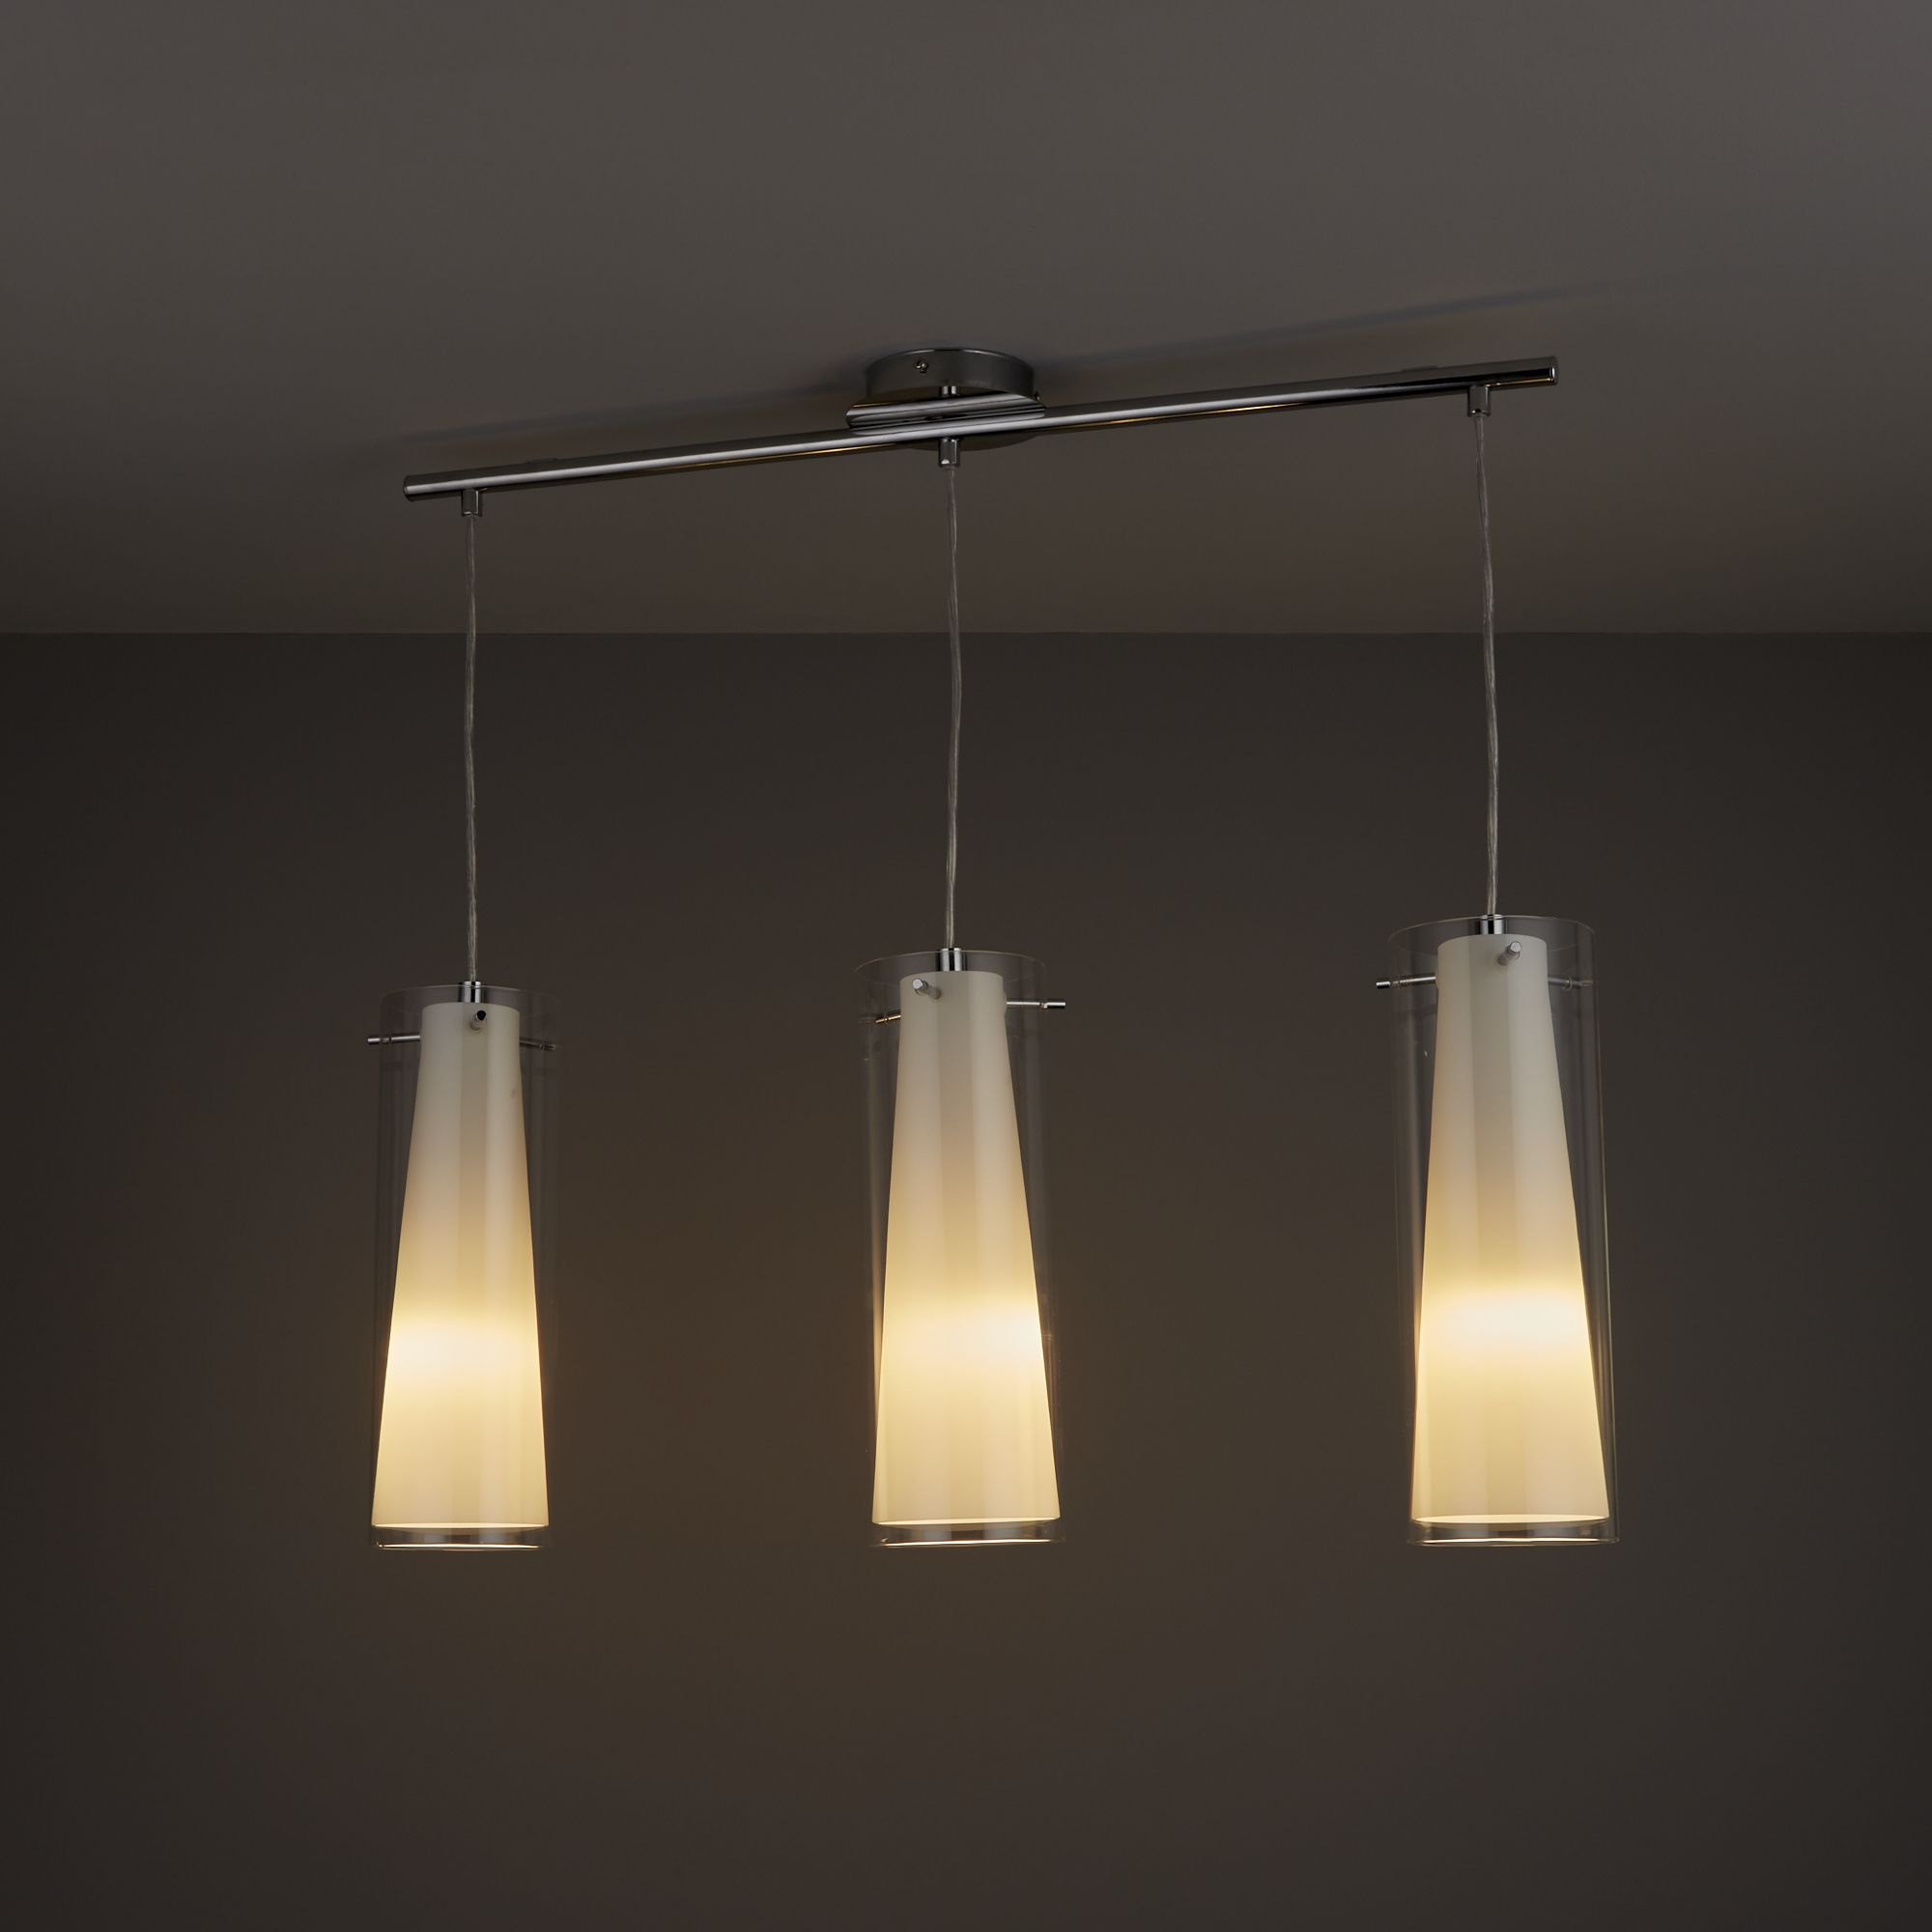 DIY At BQ - Kitchen pendant lighting bandq